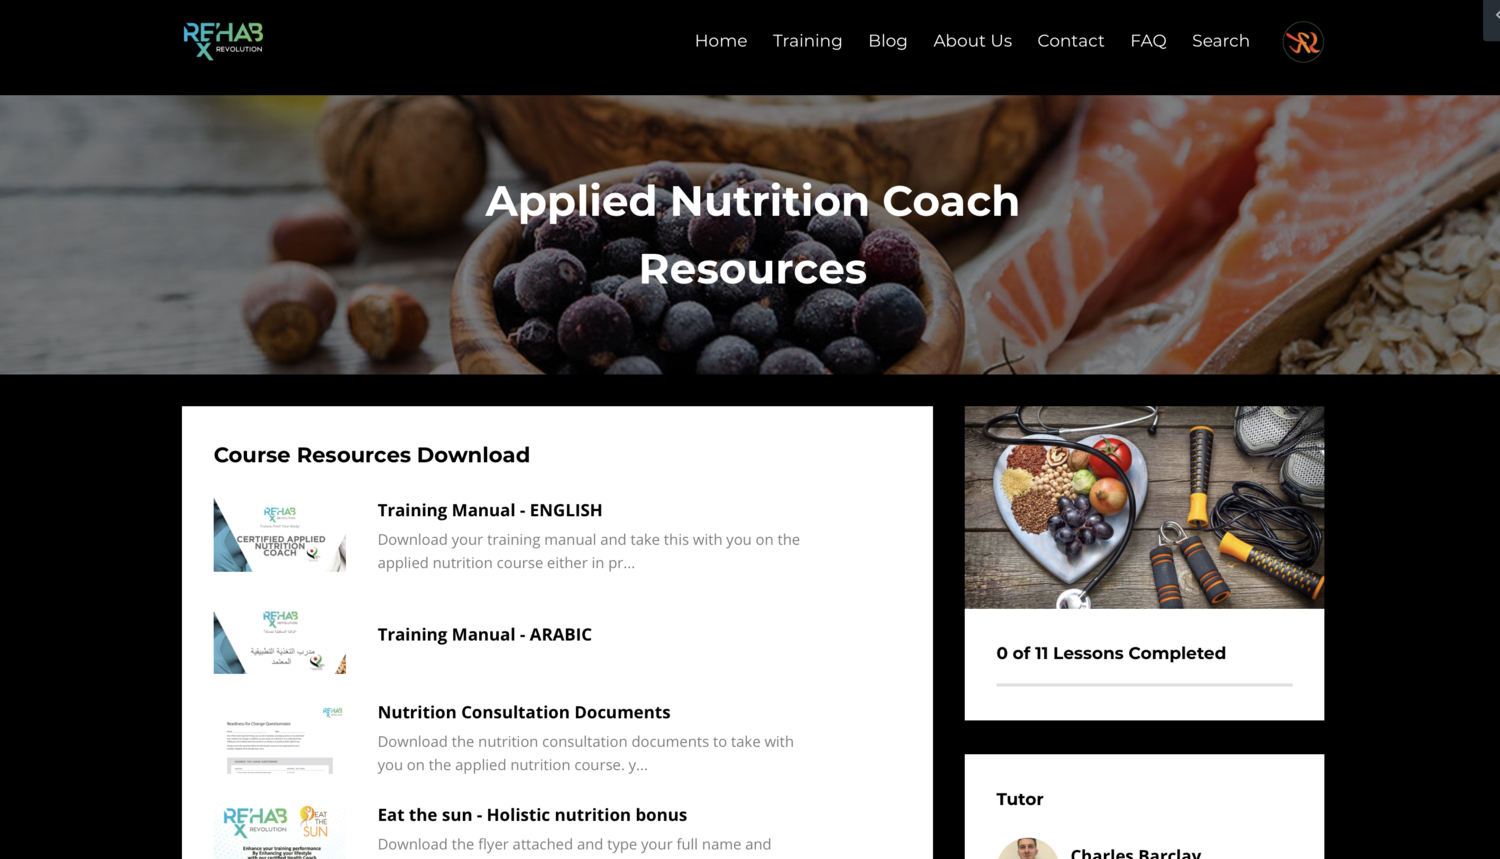 Applied Nutrition Coach